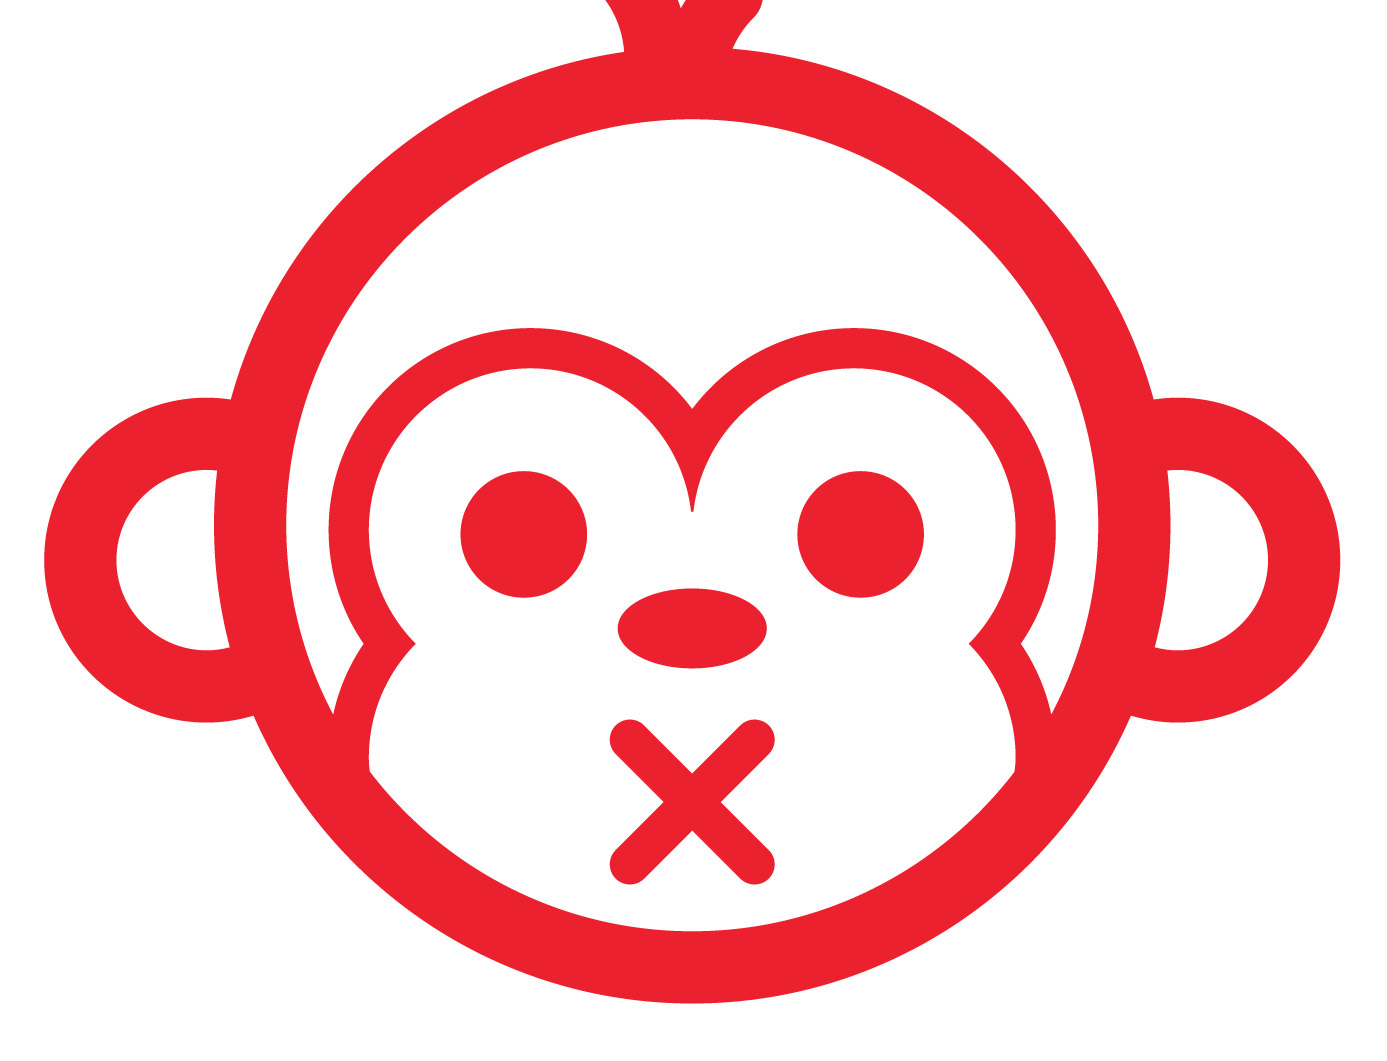 clipart royalty free download Vector monkey. How to create a.